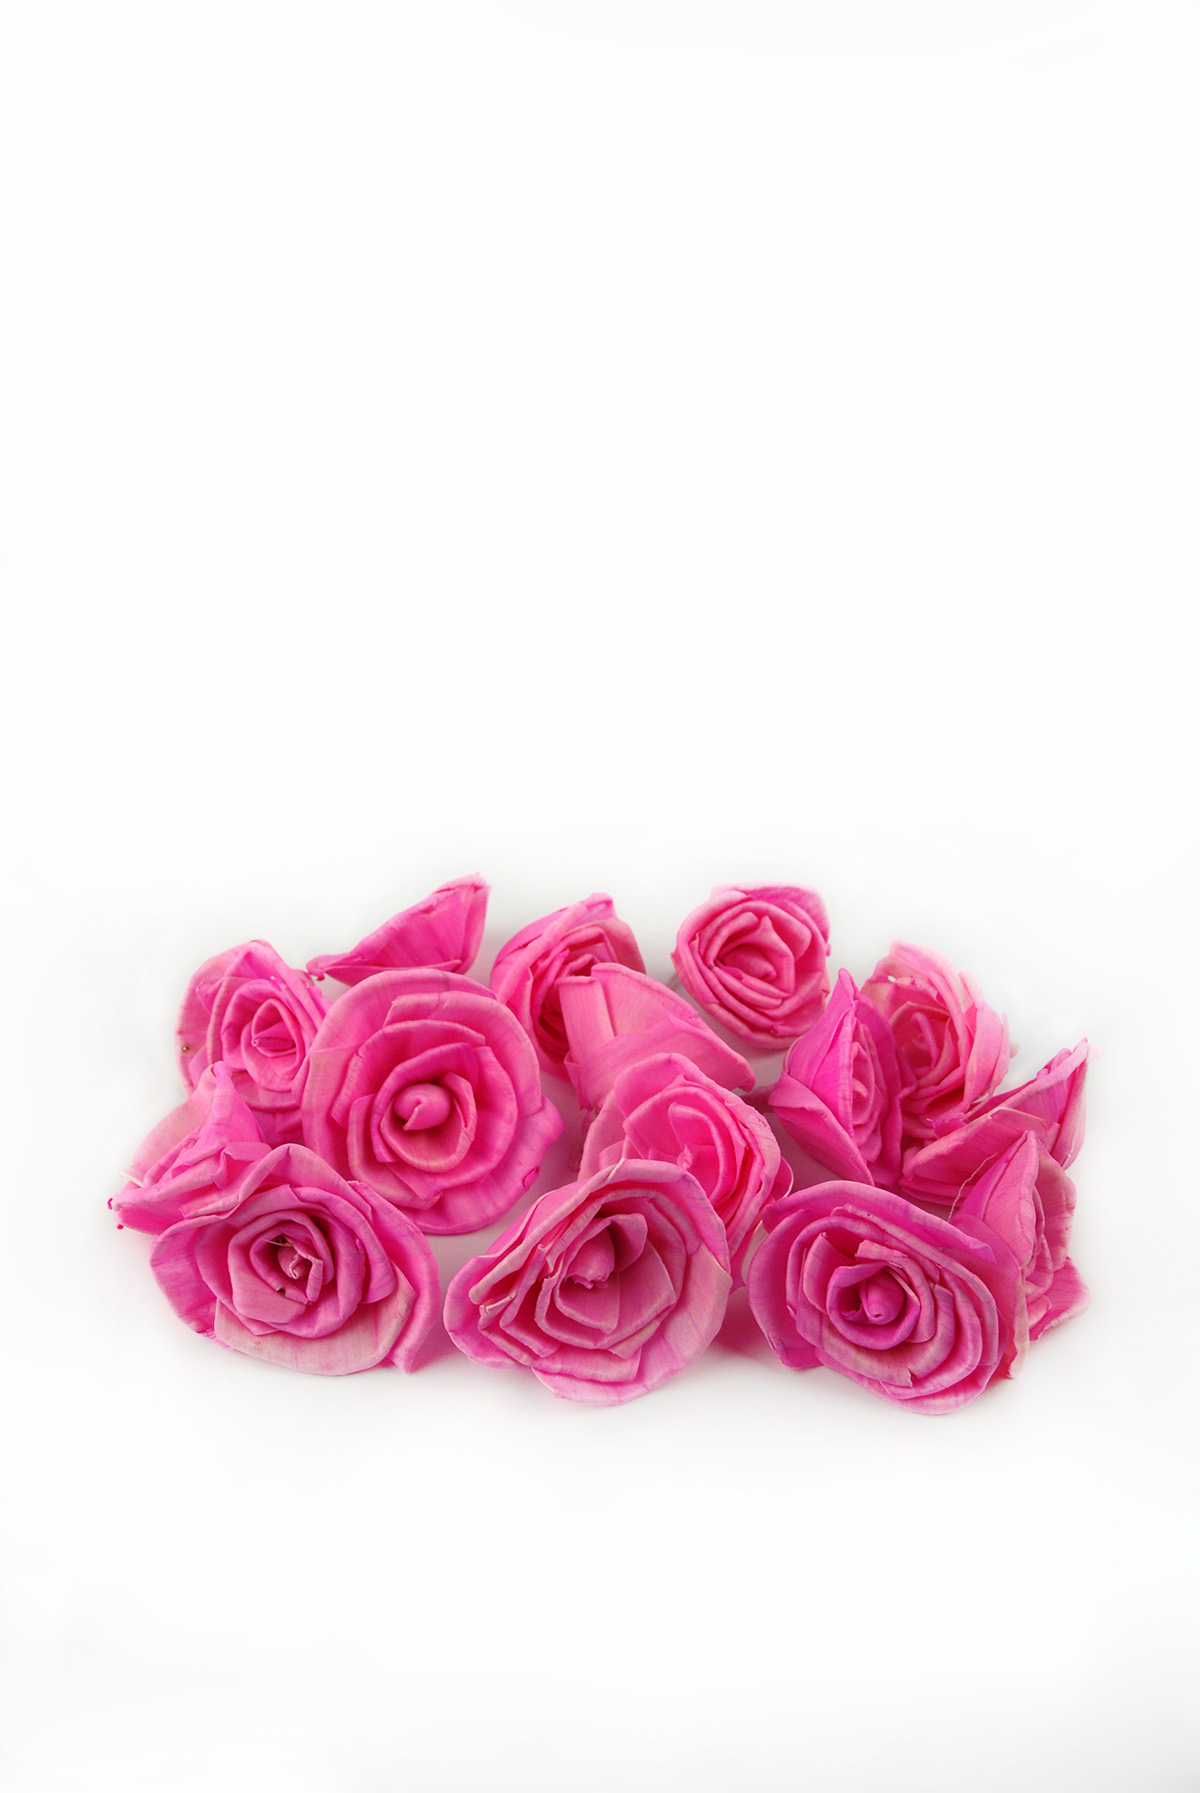 Sola Flowers Rose Pink | 15 flowers